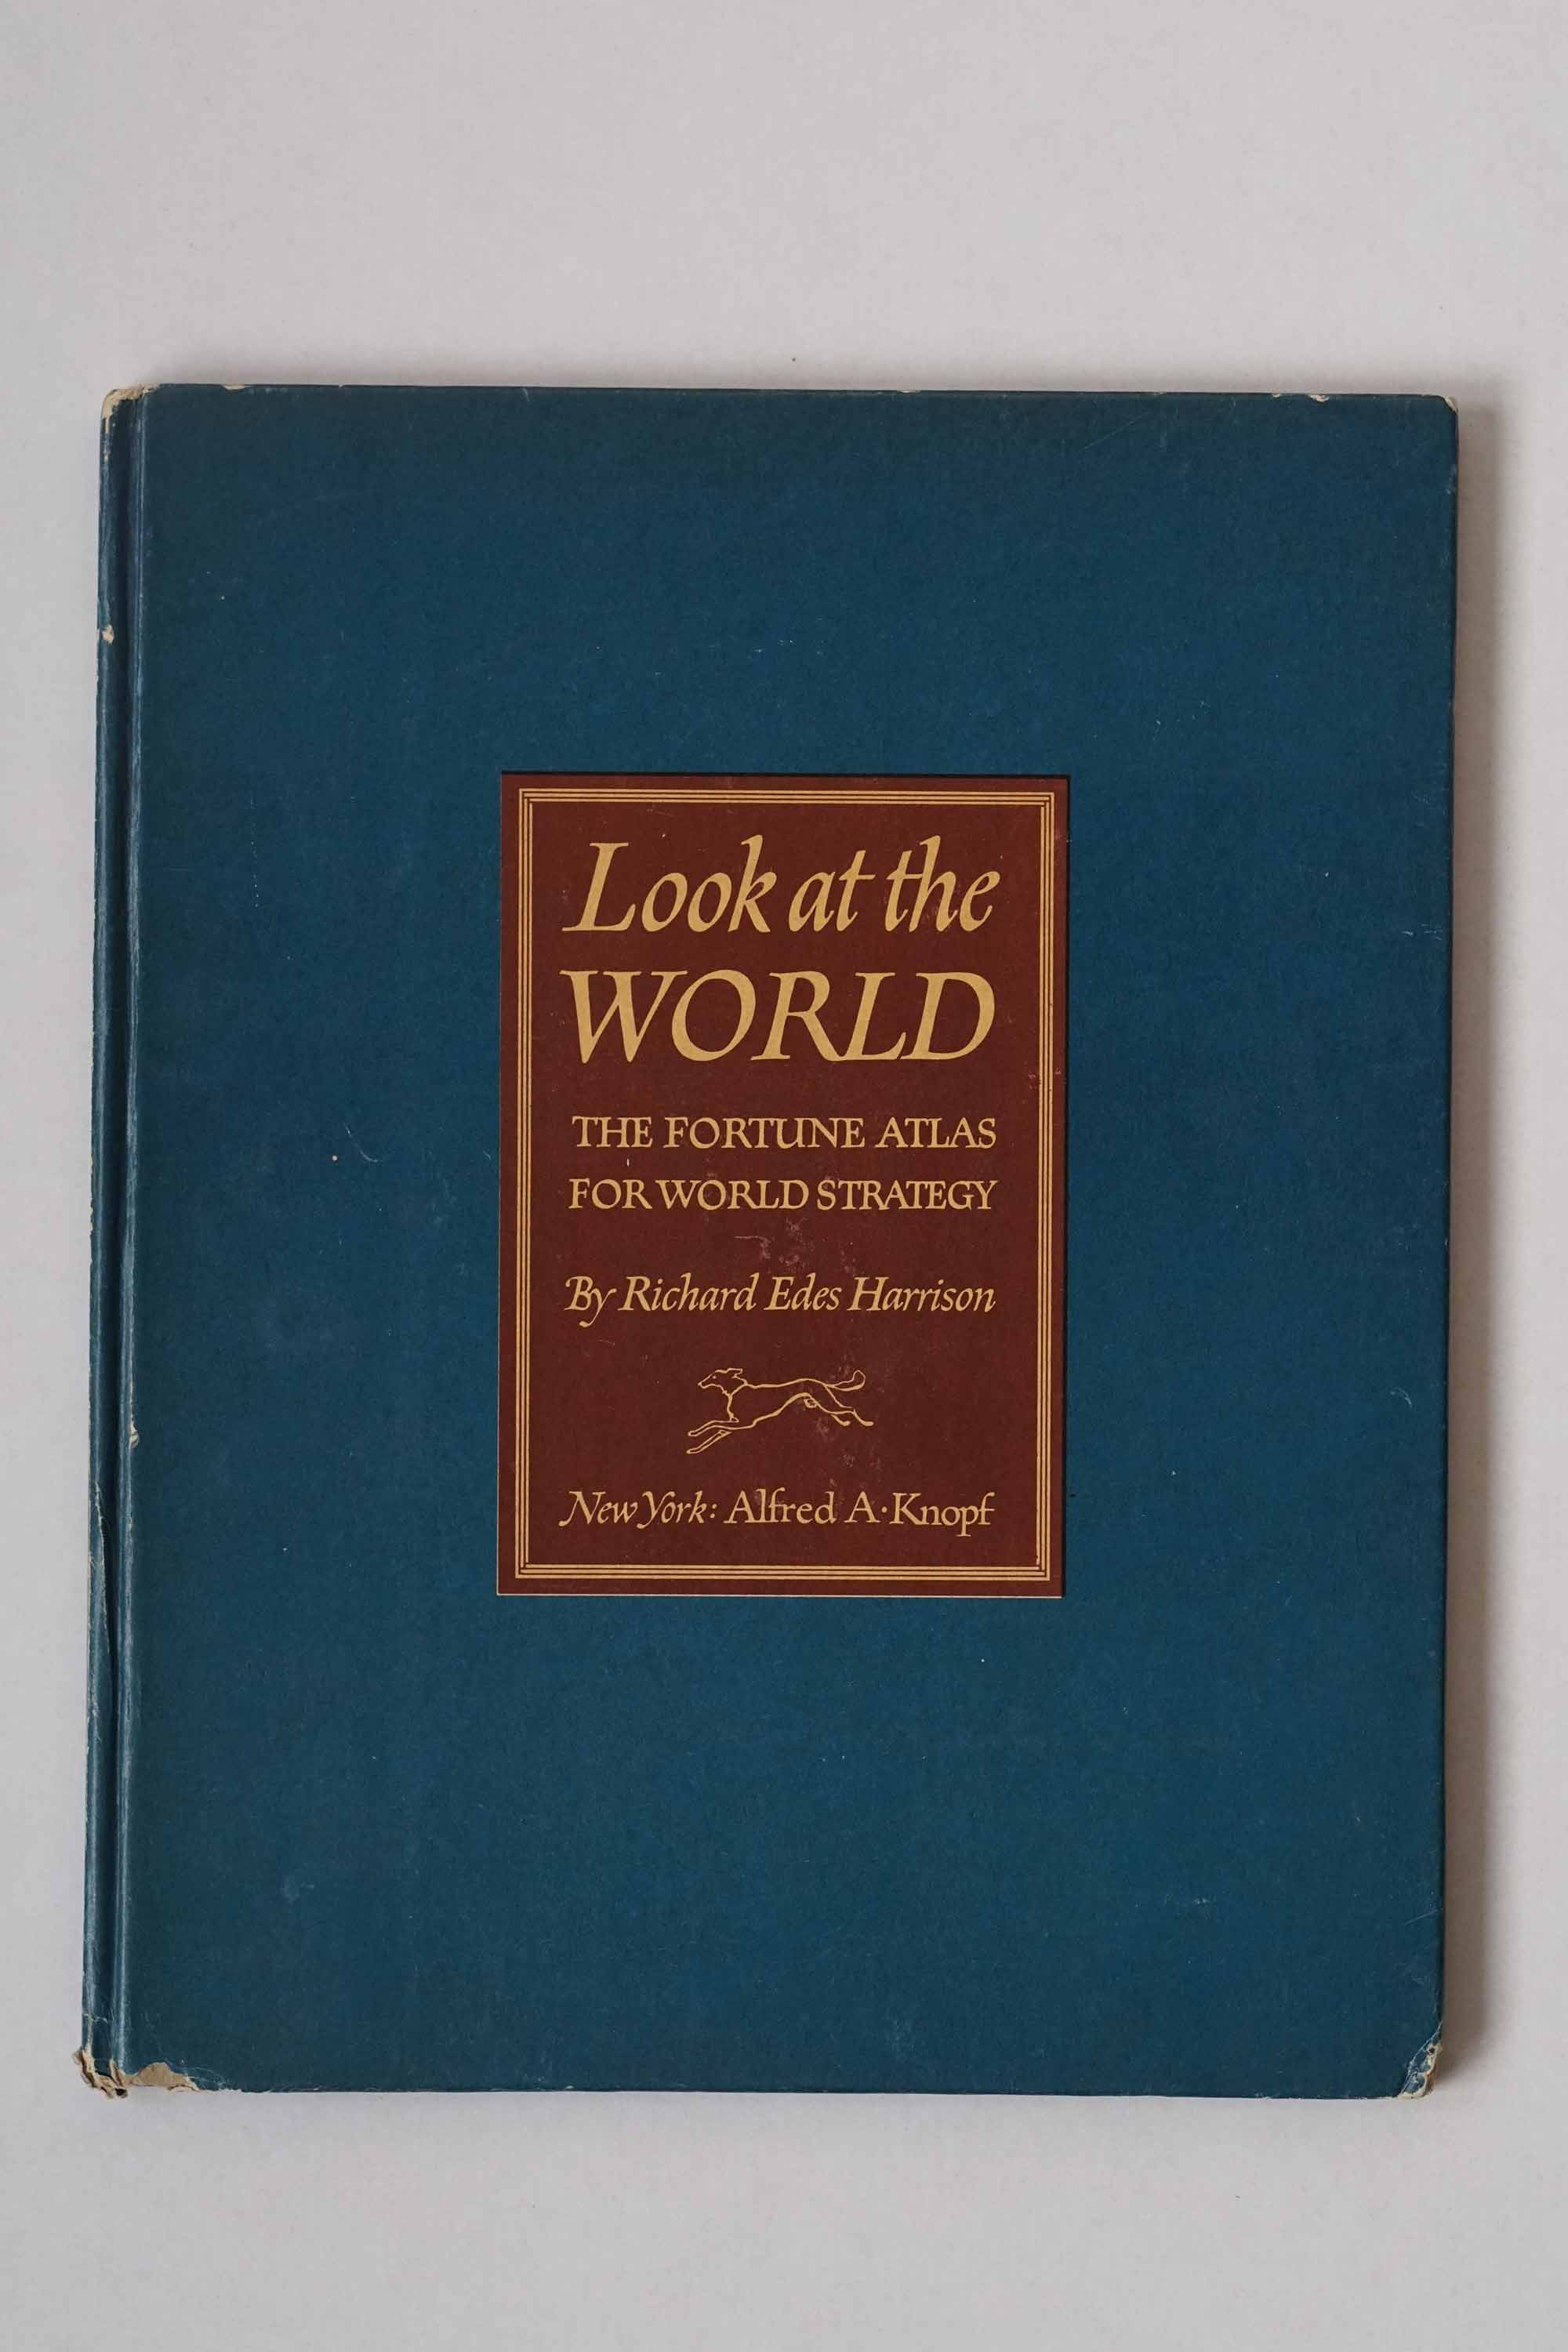 Look at the World - atlas by Richard Edes Harrison from 1944